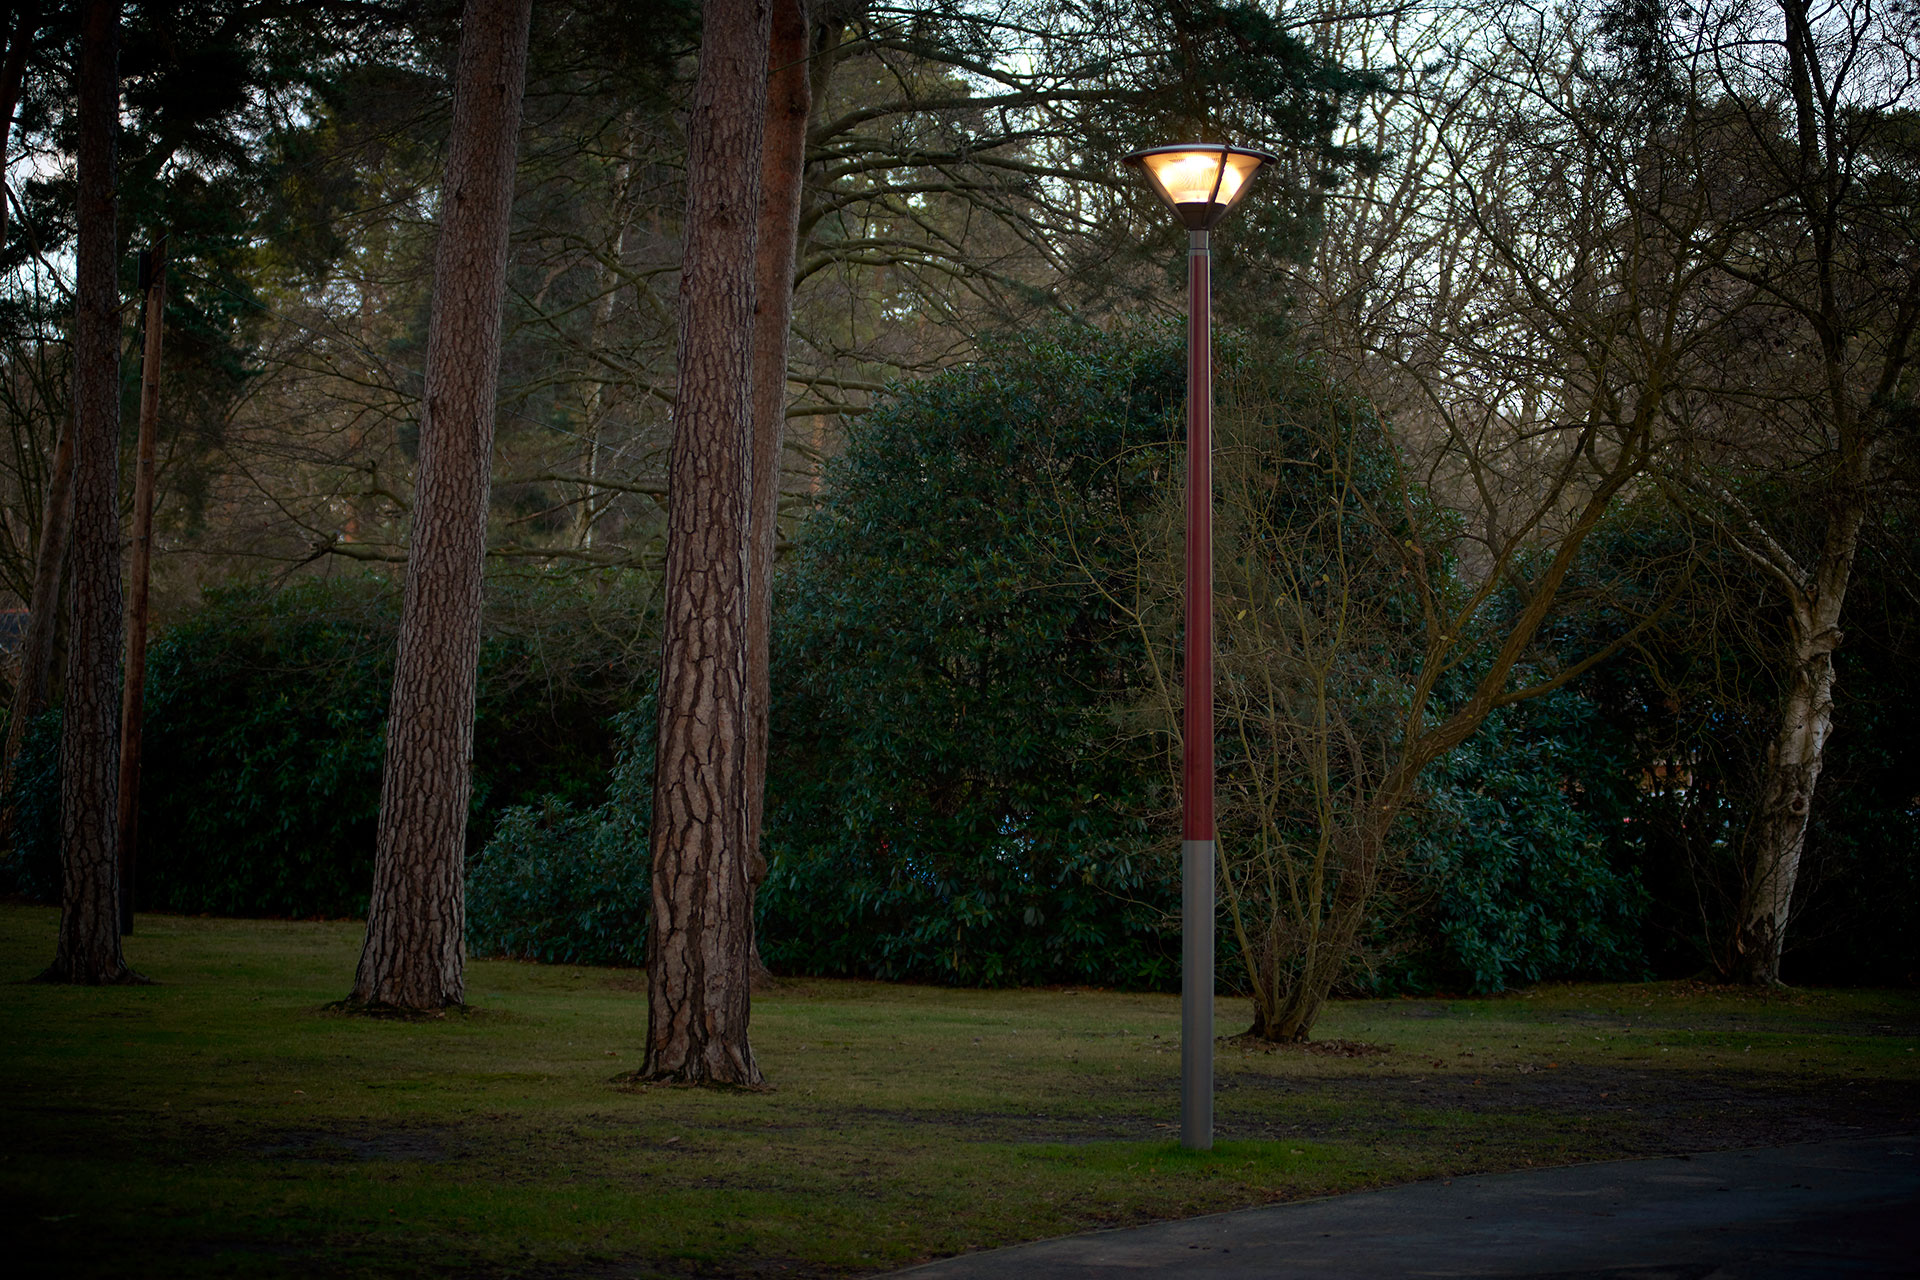 Alura LED luminaire provides a sustainable lighting solution for St Marys Ascot